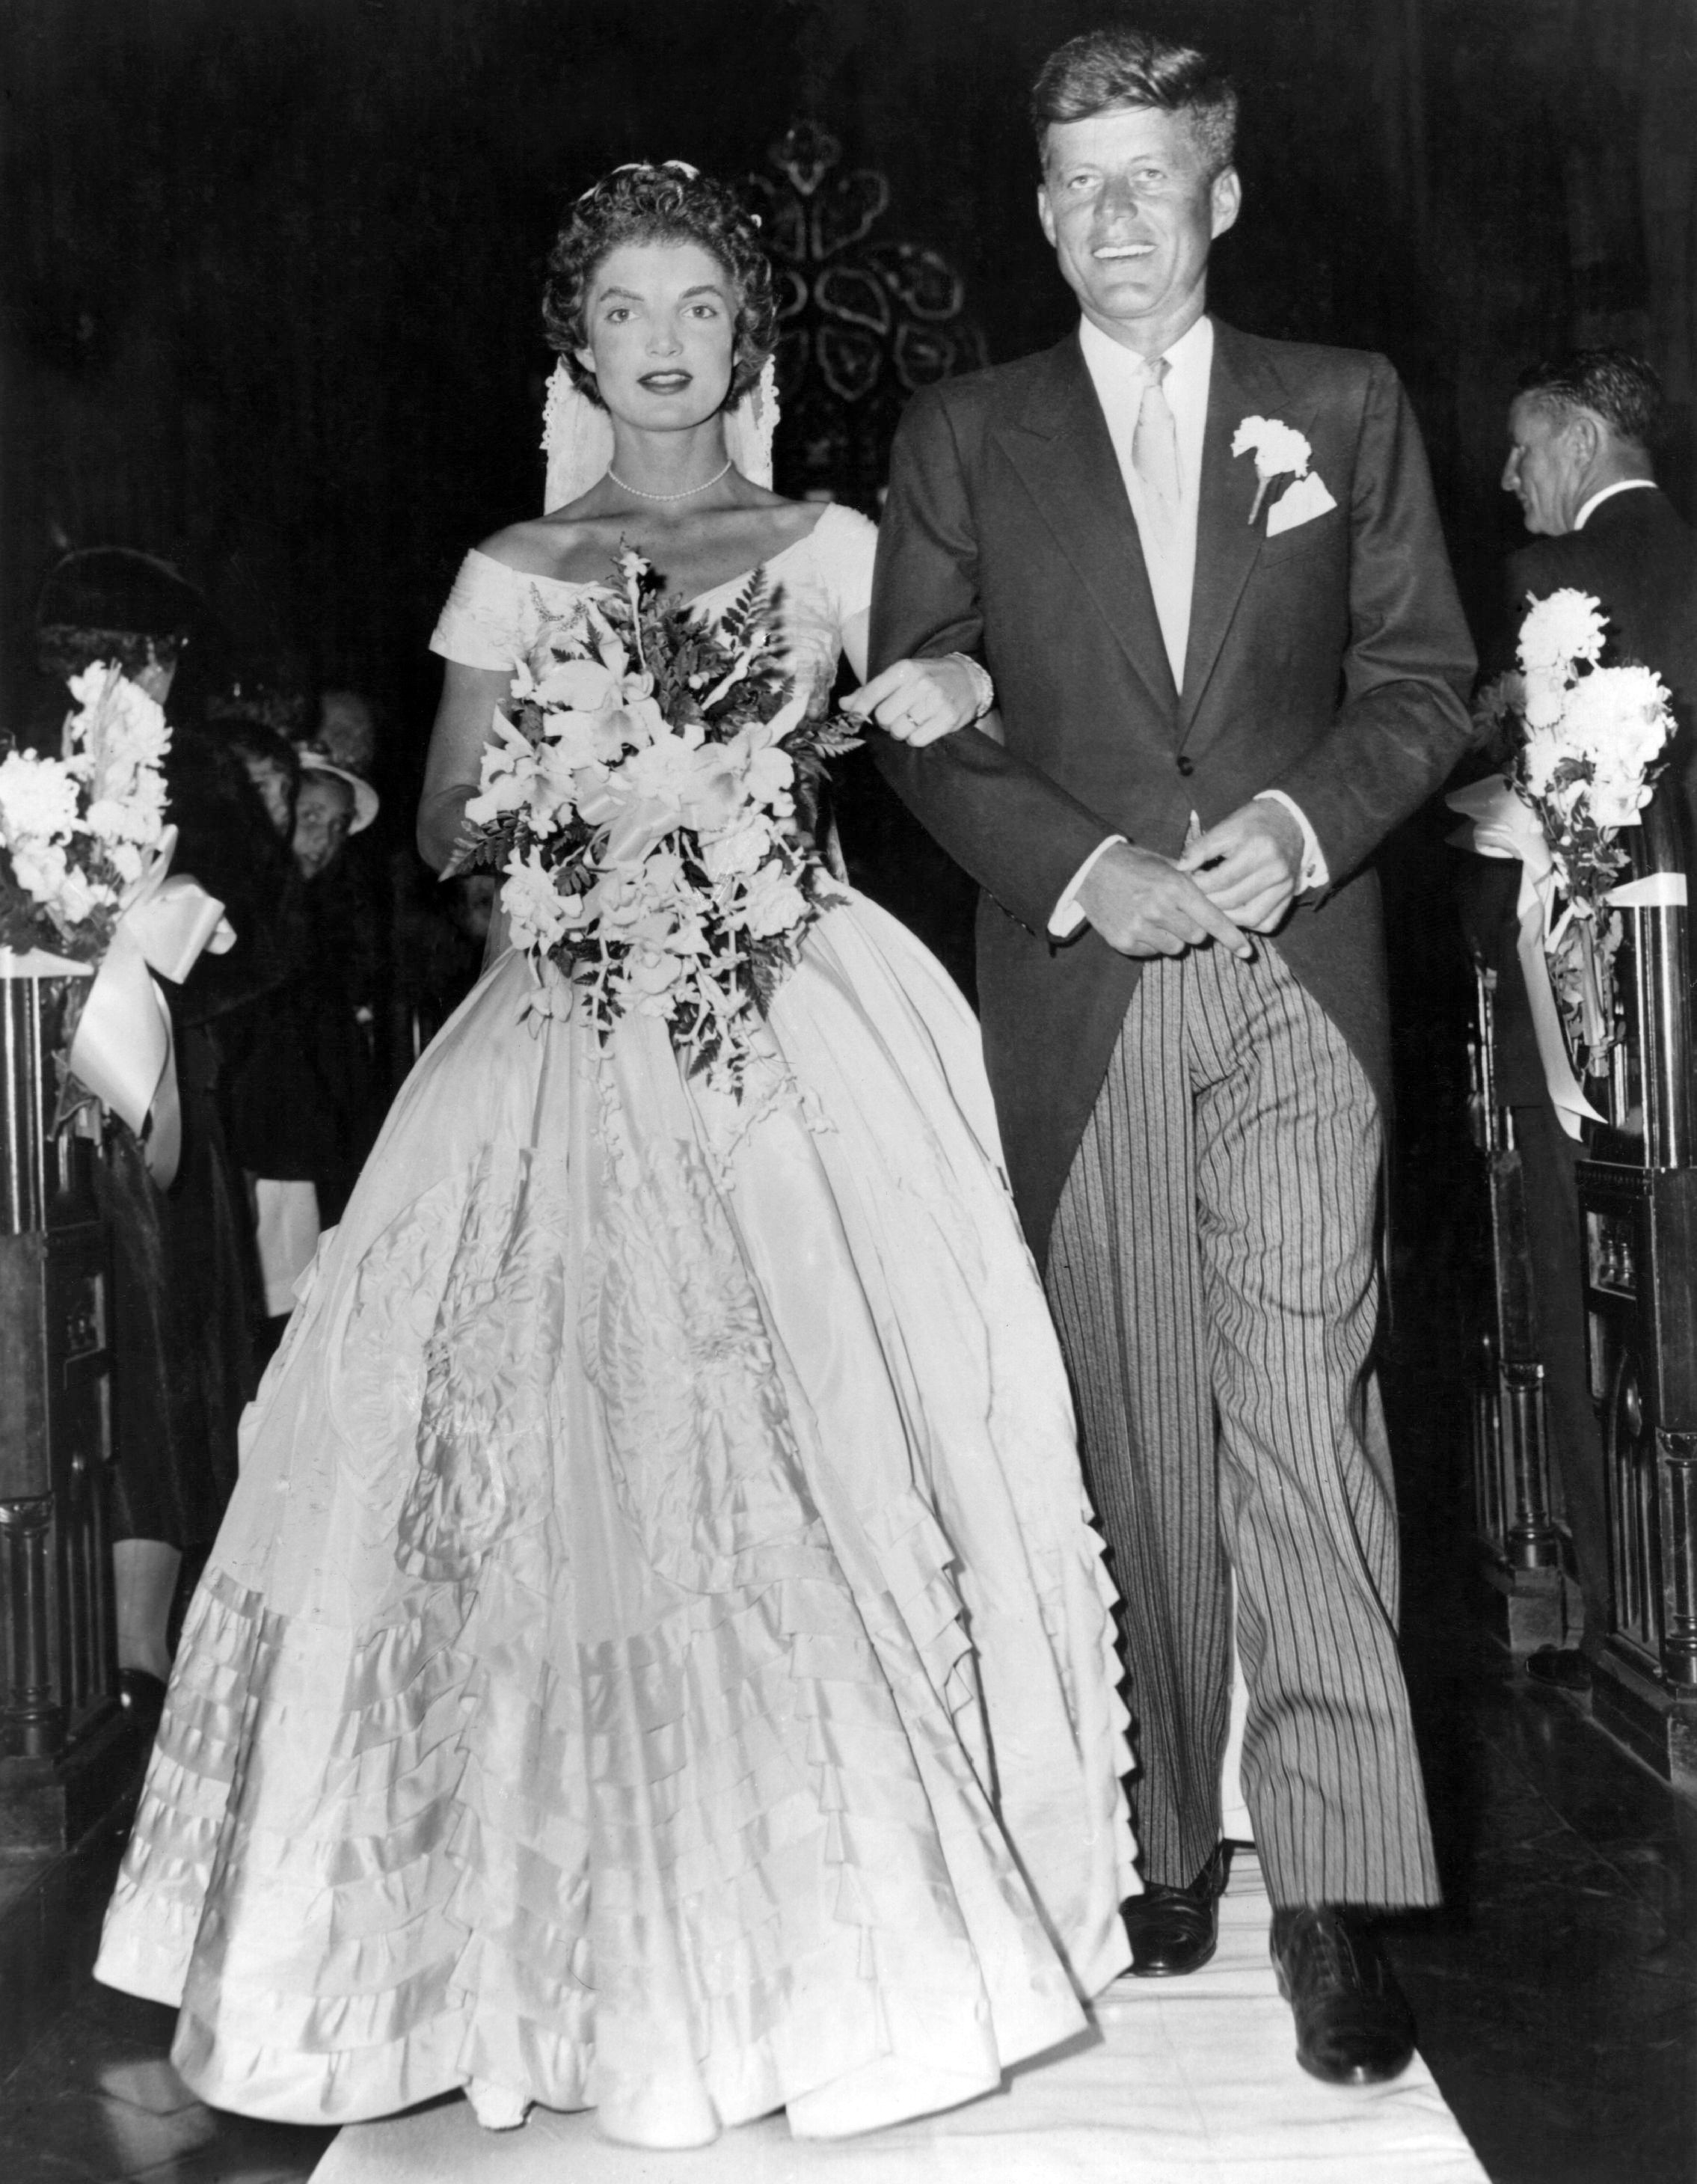 Fab edit 15 iconic celebrity wedding dresses john kennedy fab edit 15 iconic celebrity wedding dresses jacqueline kennedy junglespirit Image collections